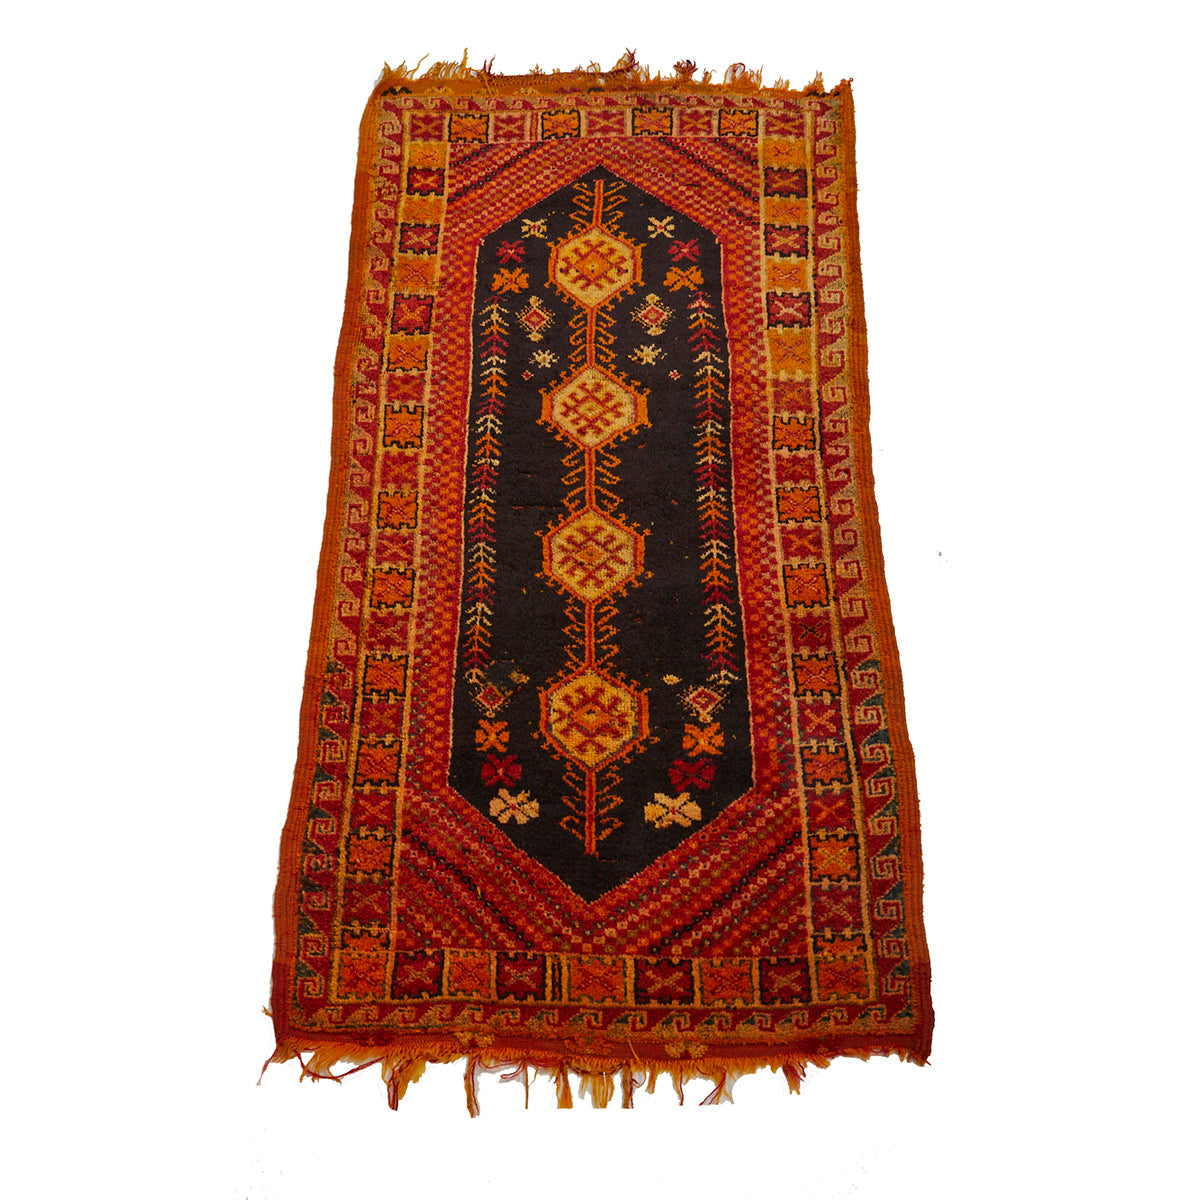 Orange Moroccan rug with traditional pattern design - Kantara | Moroccan Rugs